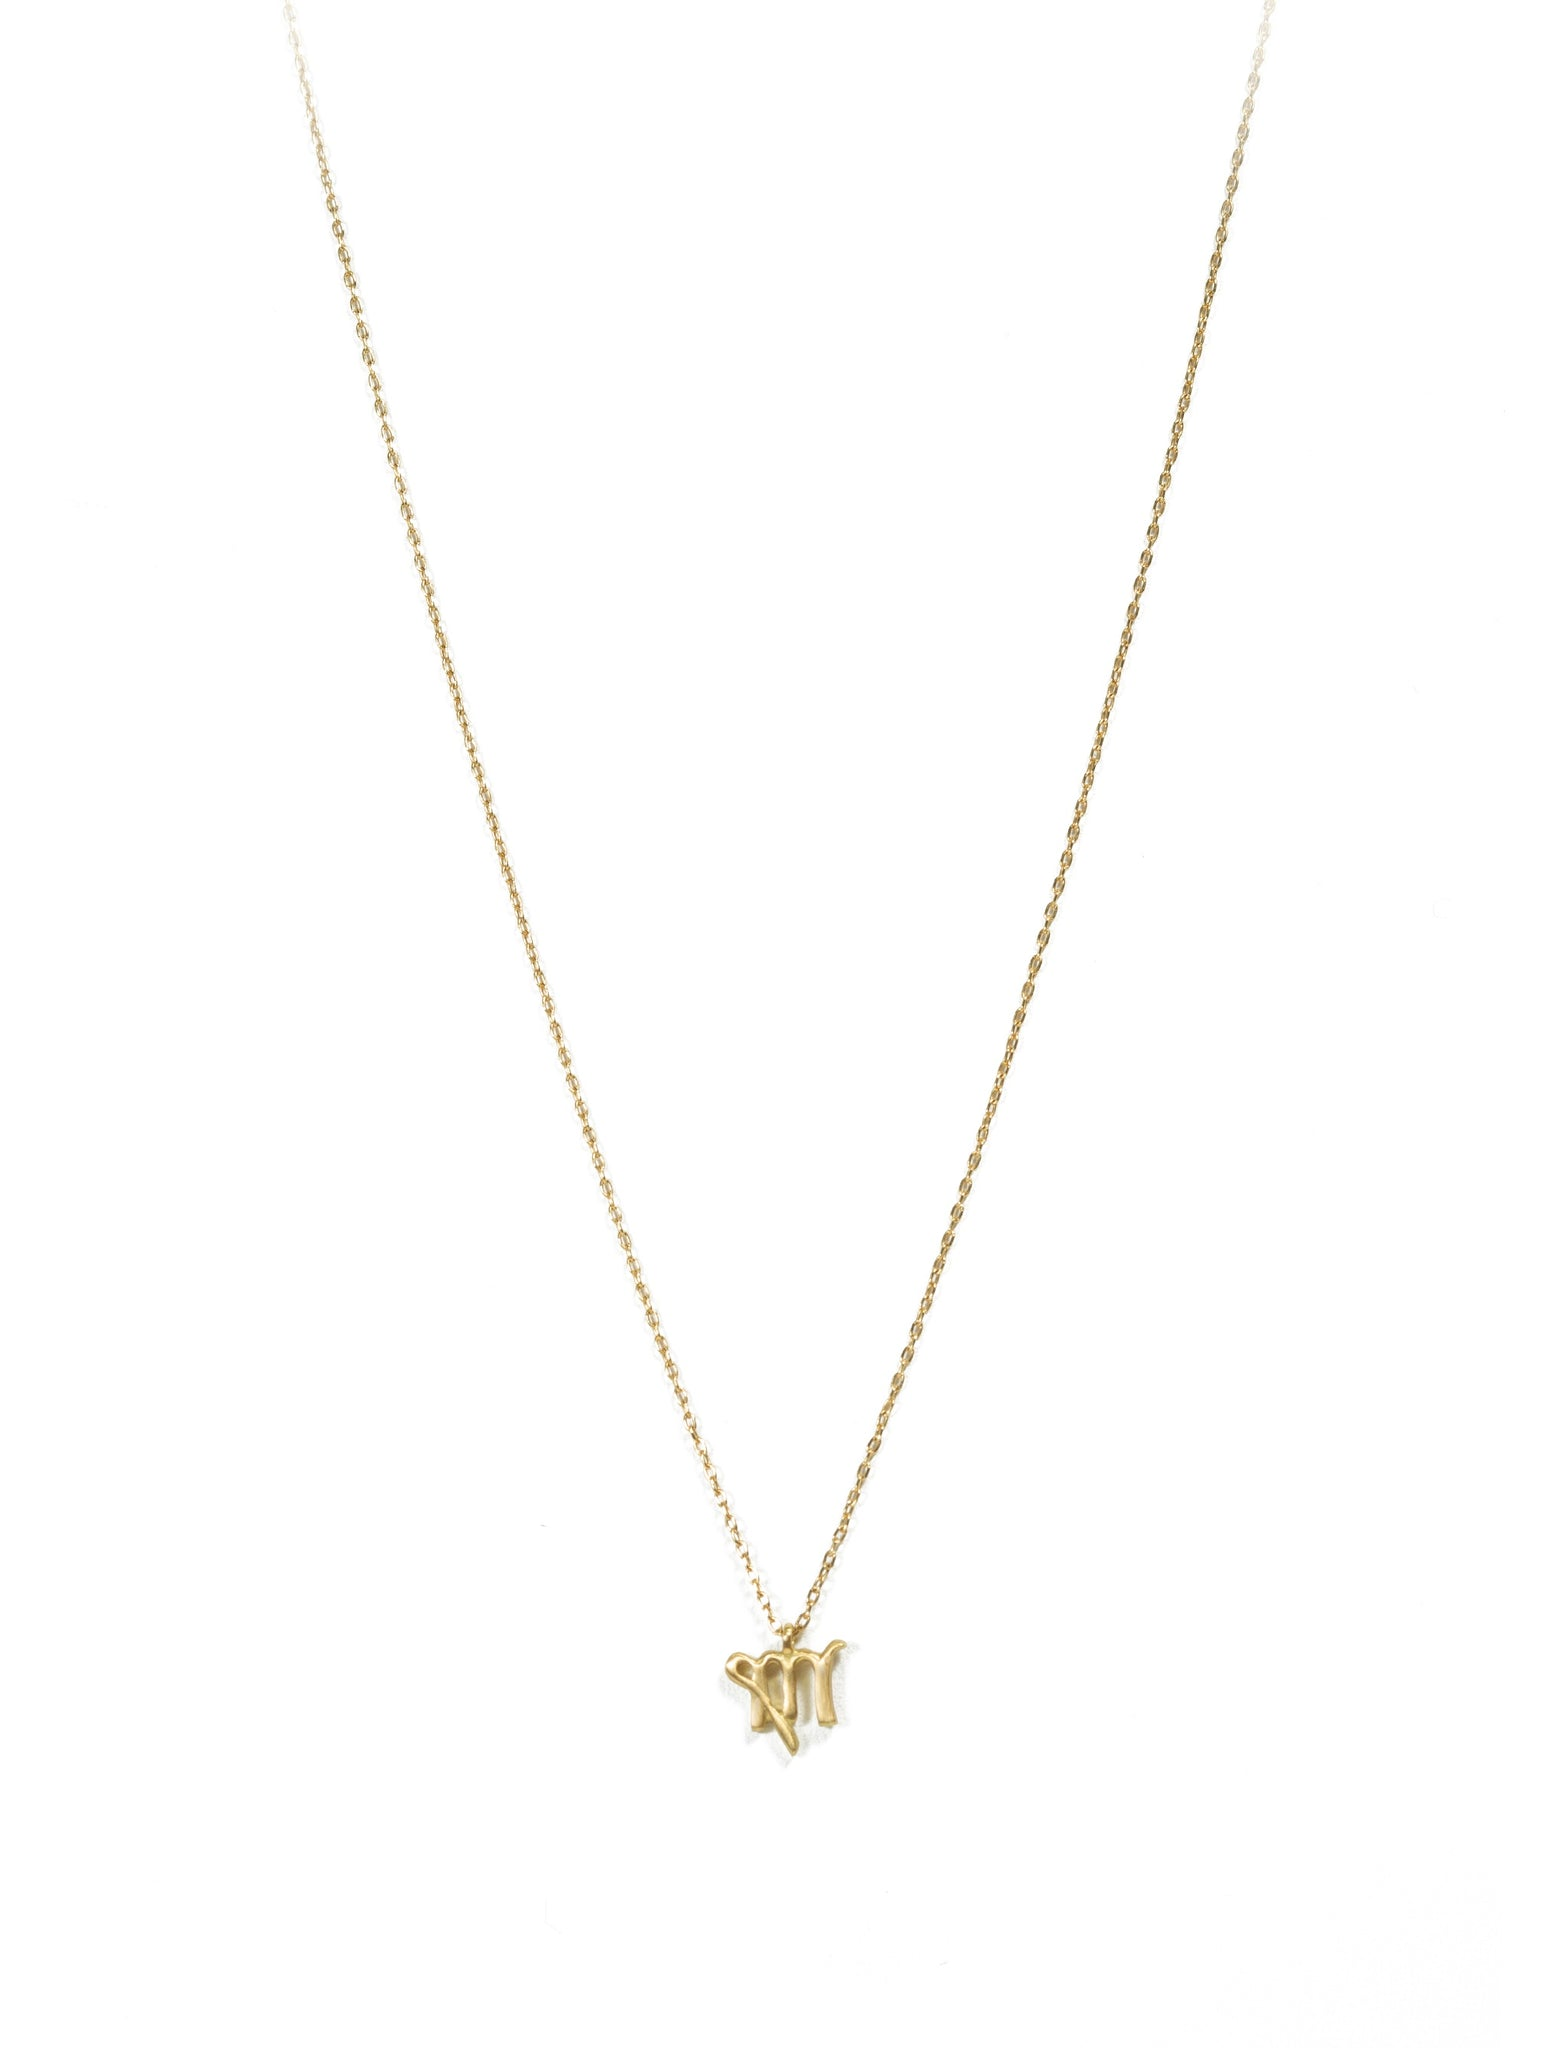 18K Gold Necklace With Virgo Zodiac Symbol